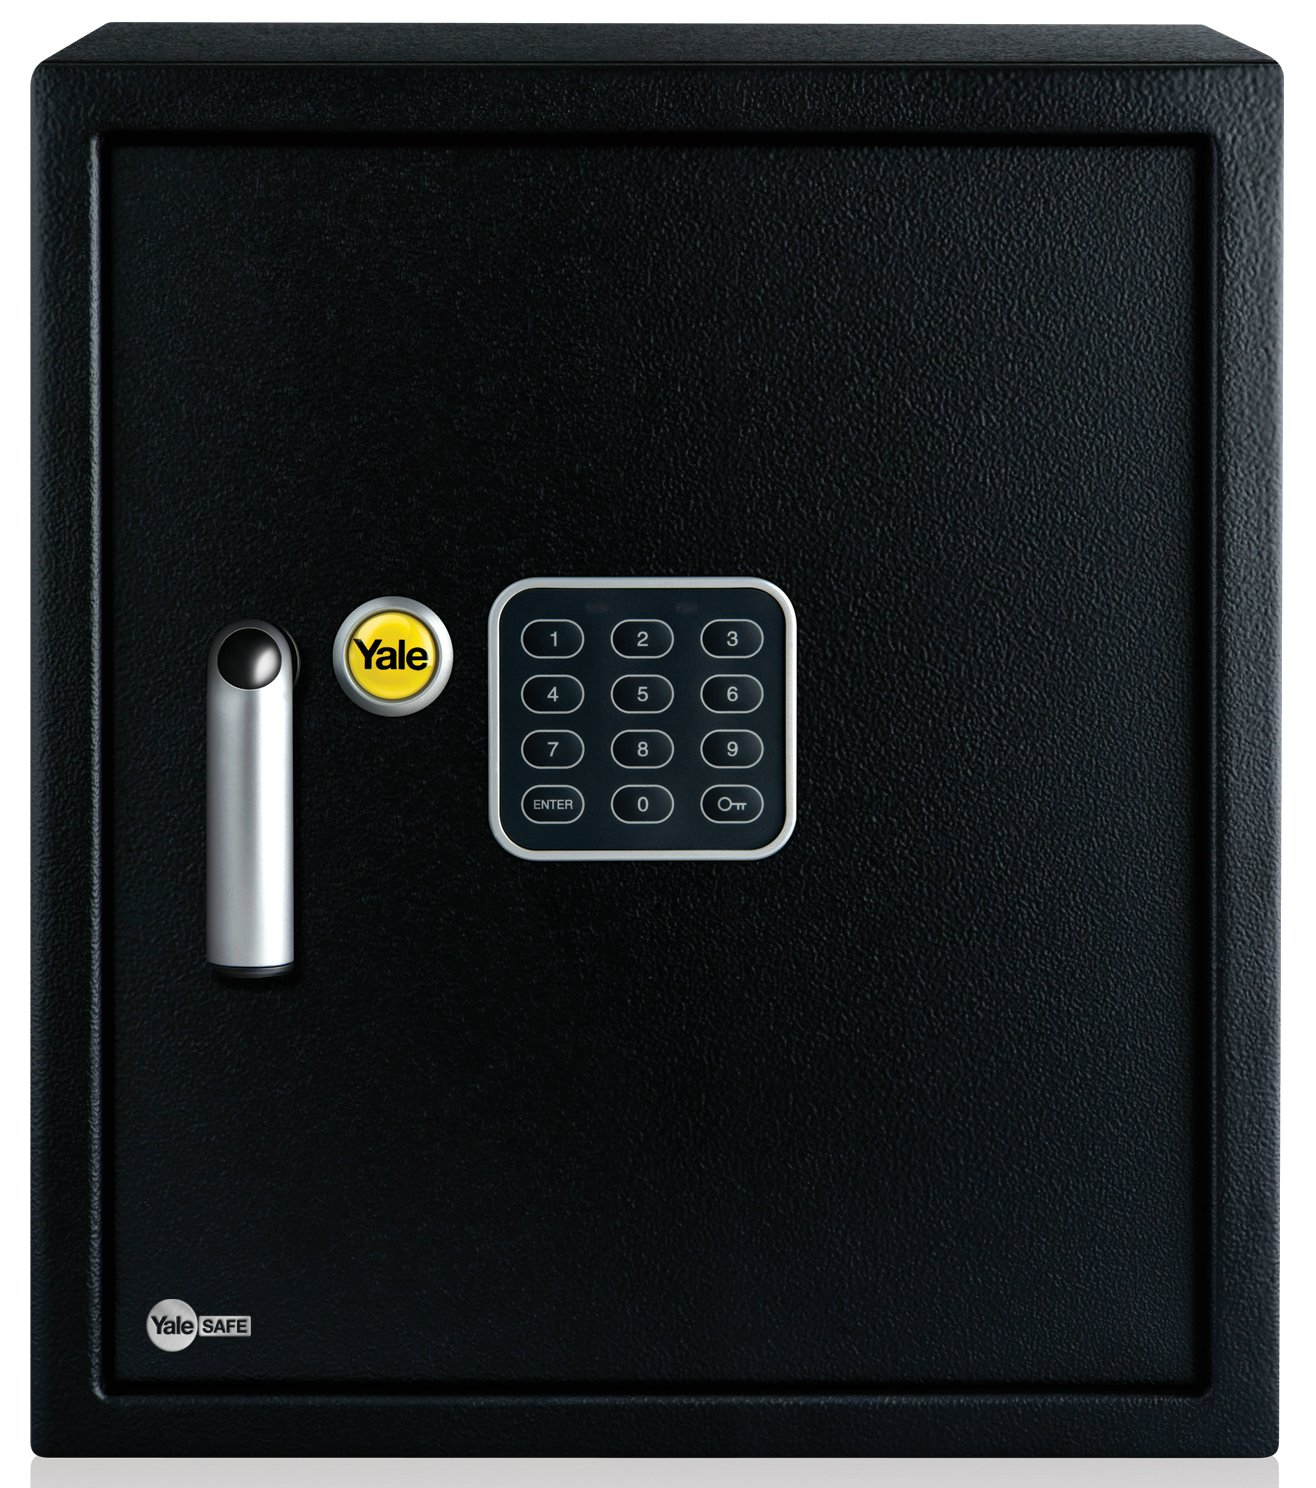 YSV/390/DB1 - Yale Home Electronic Safe Box (Large)